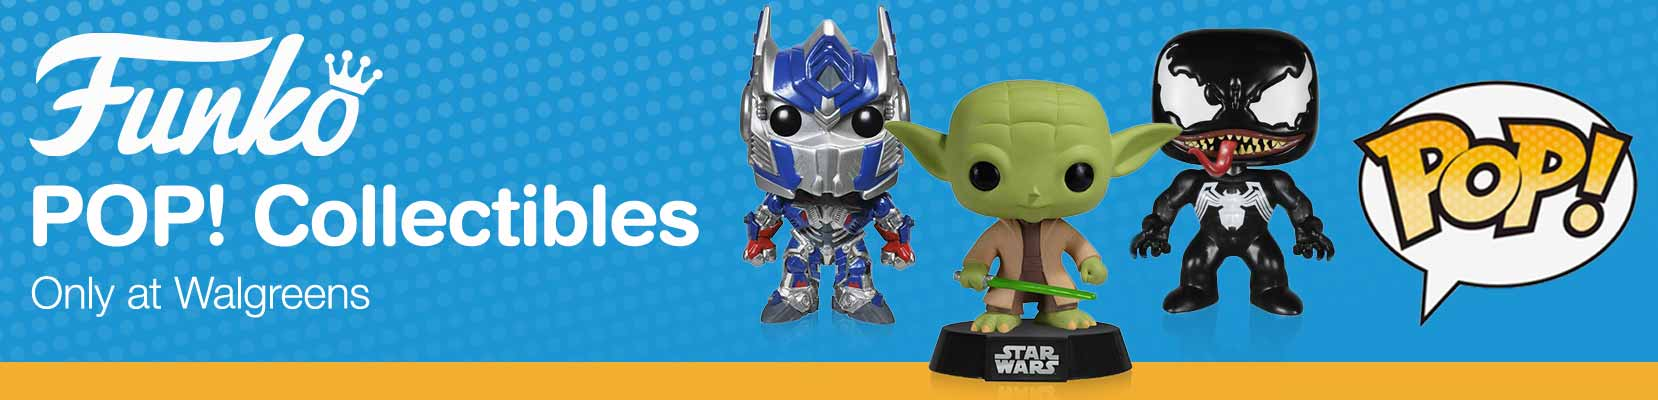 Funko Pop! Collectibles. Only at Walgreens.